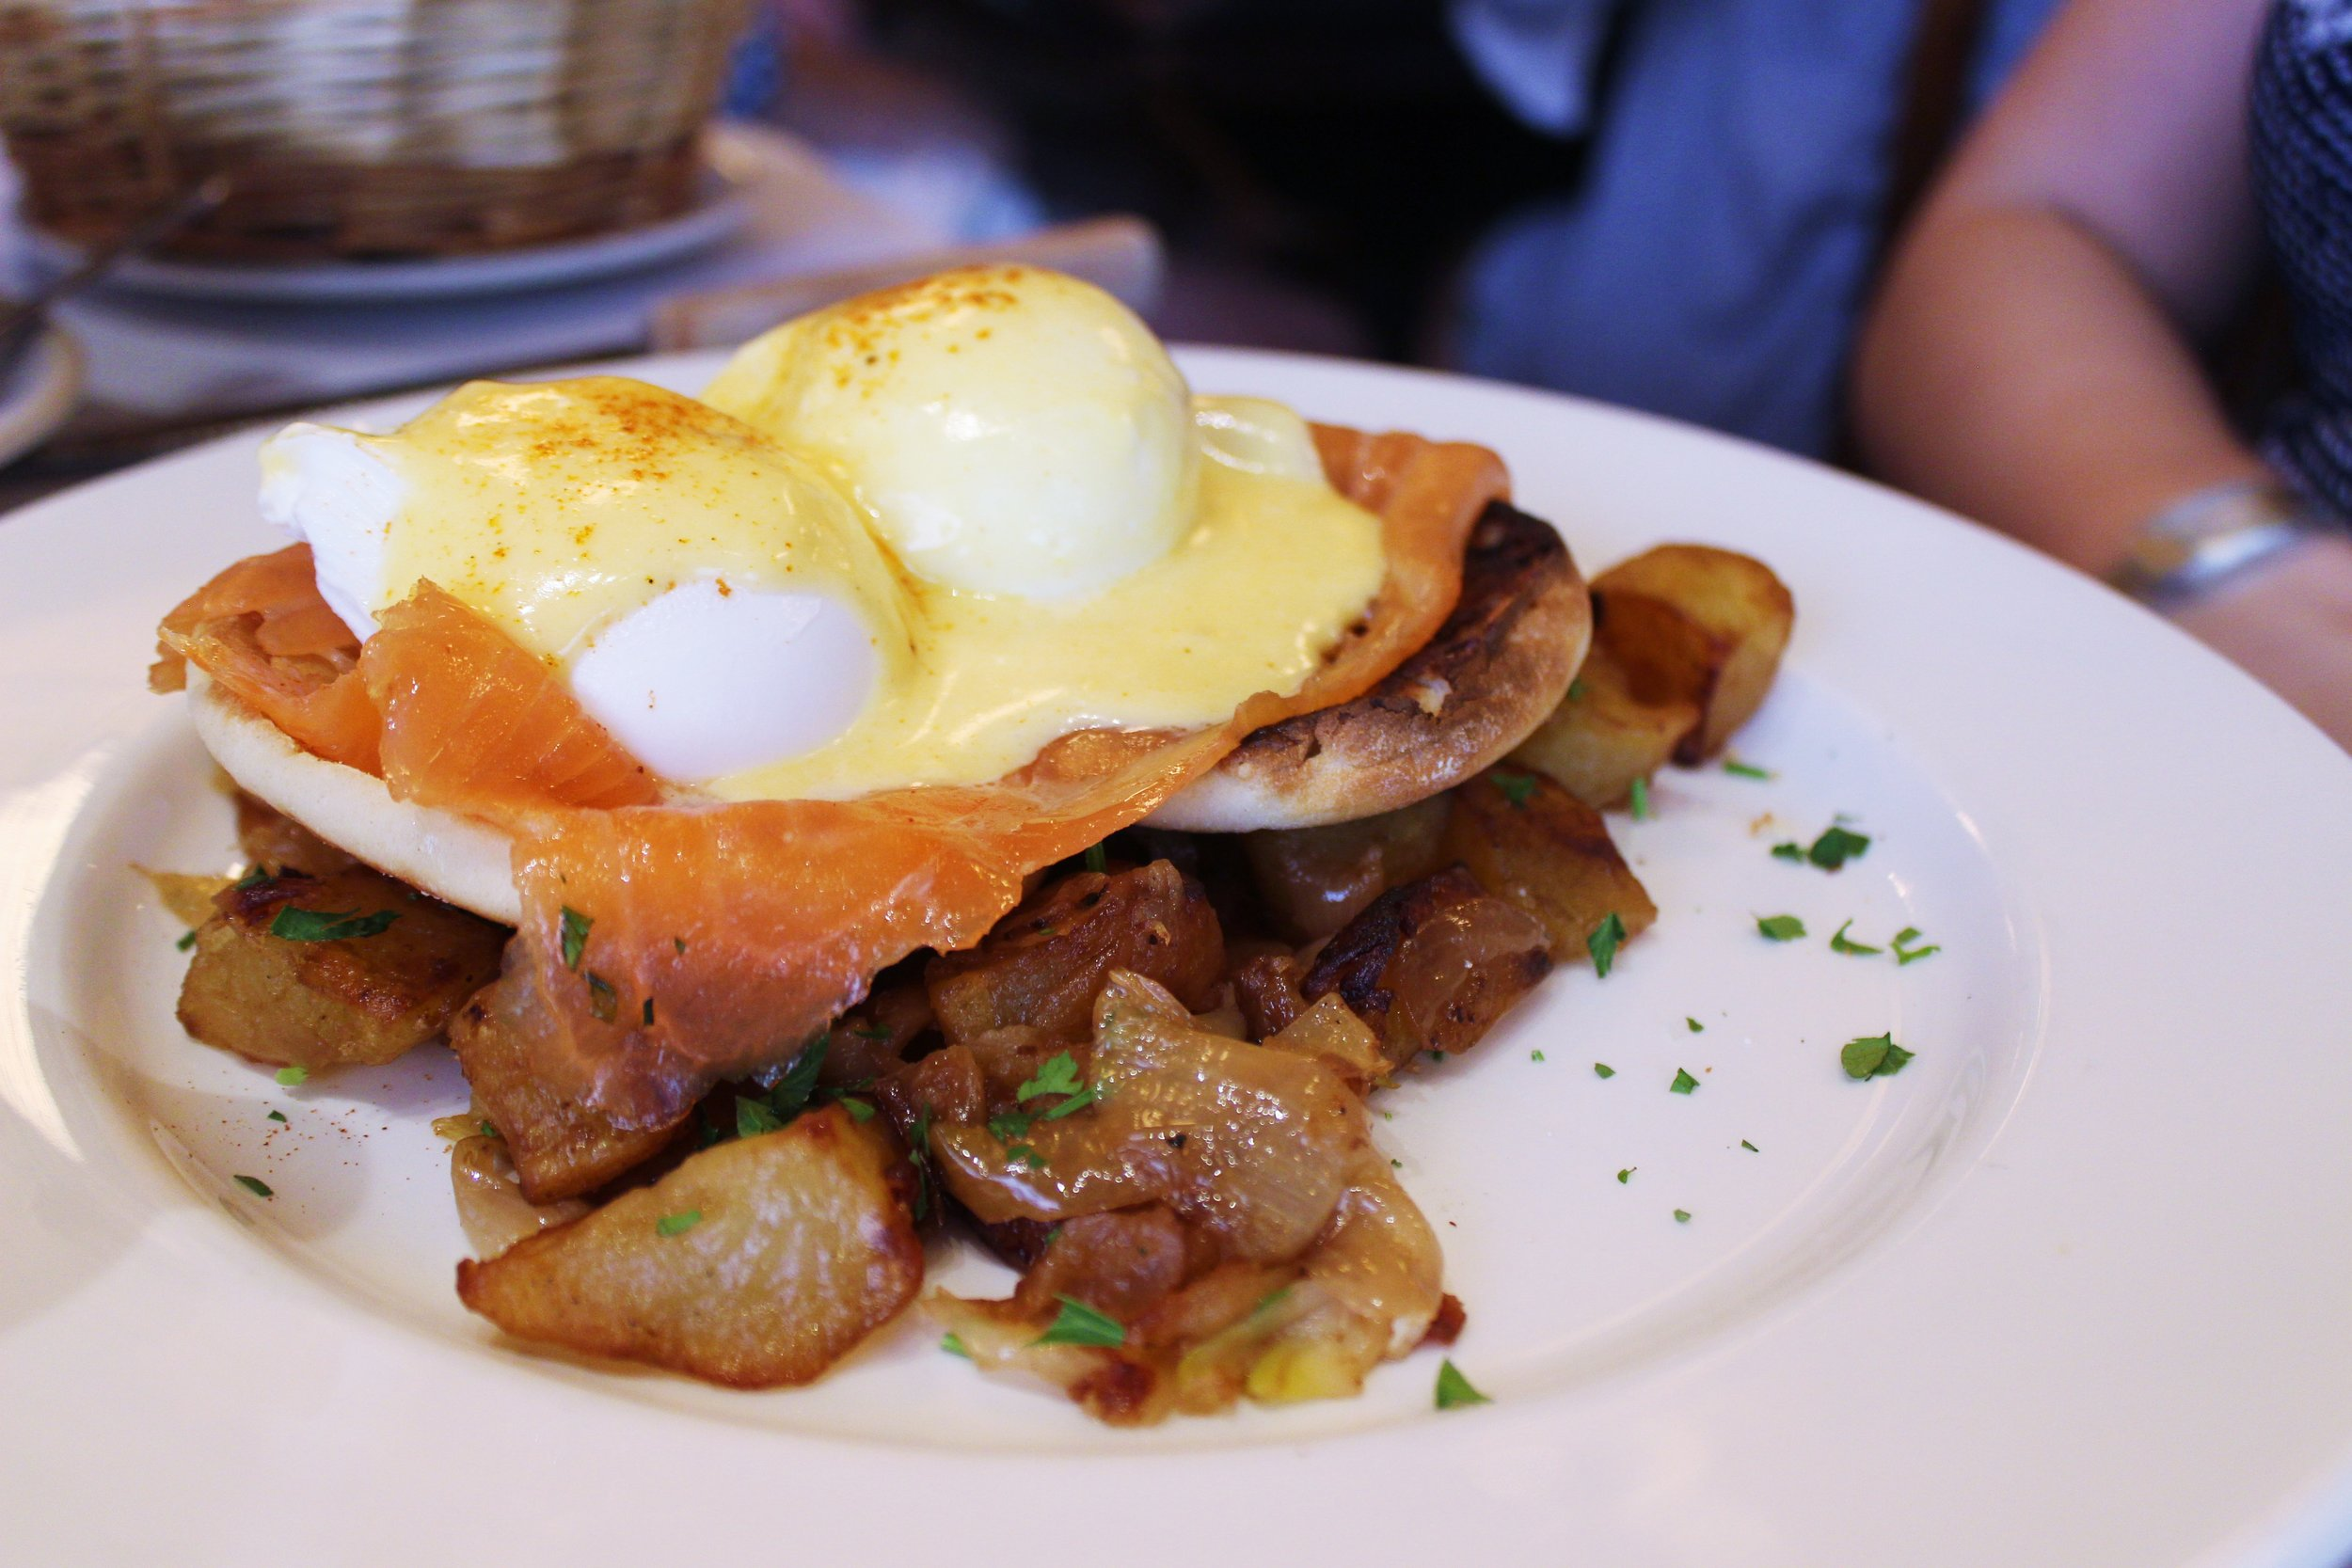 Eggs Norwegian: poached eggs with smoked salmon and hollandaise